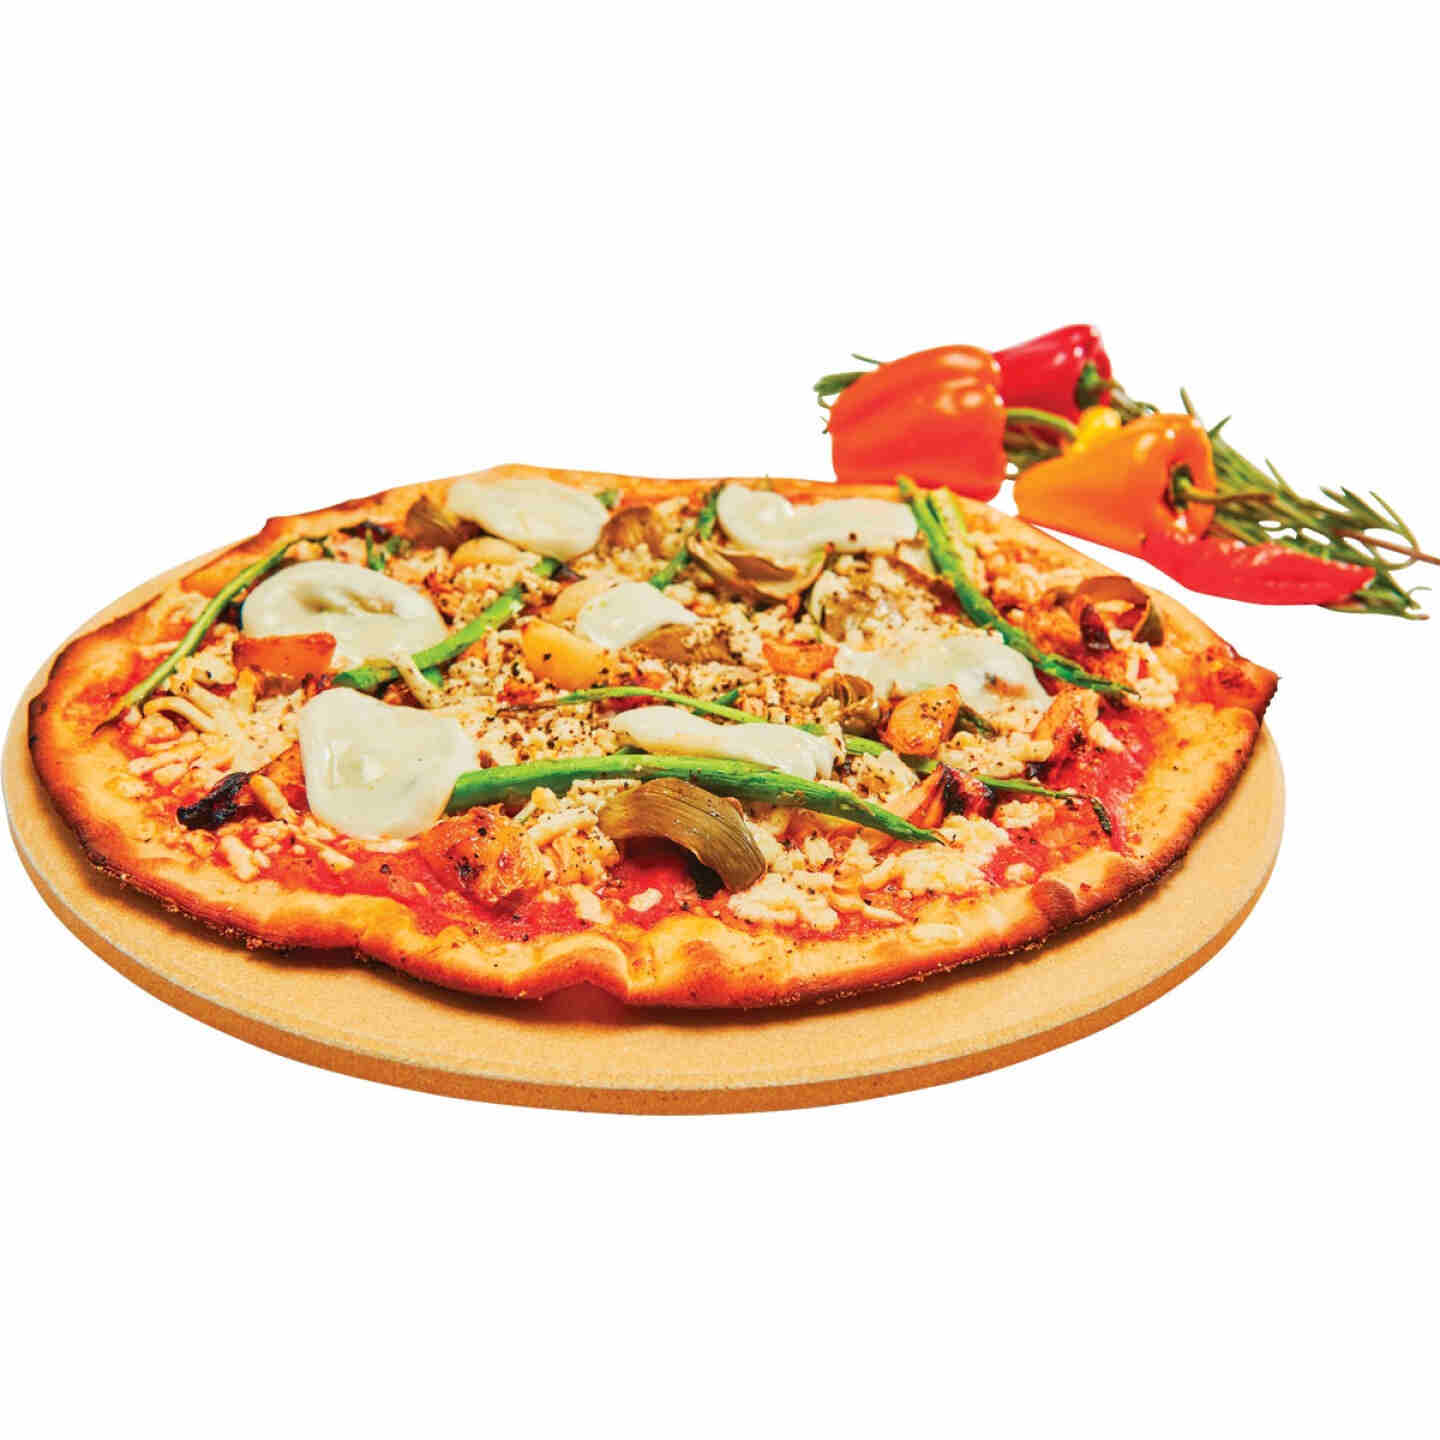 GrillPro 13 In. Ceramic Composite Pizza Stone Image 2